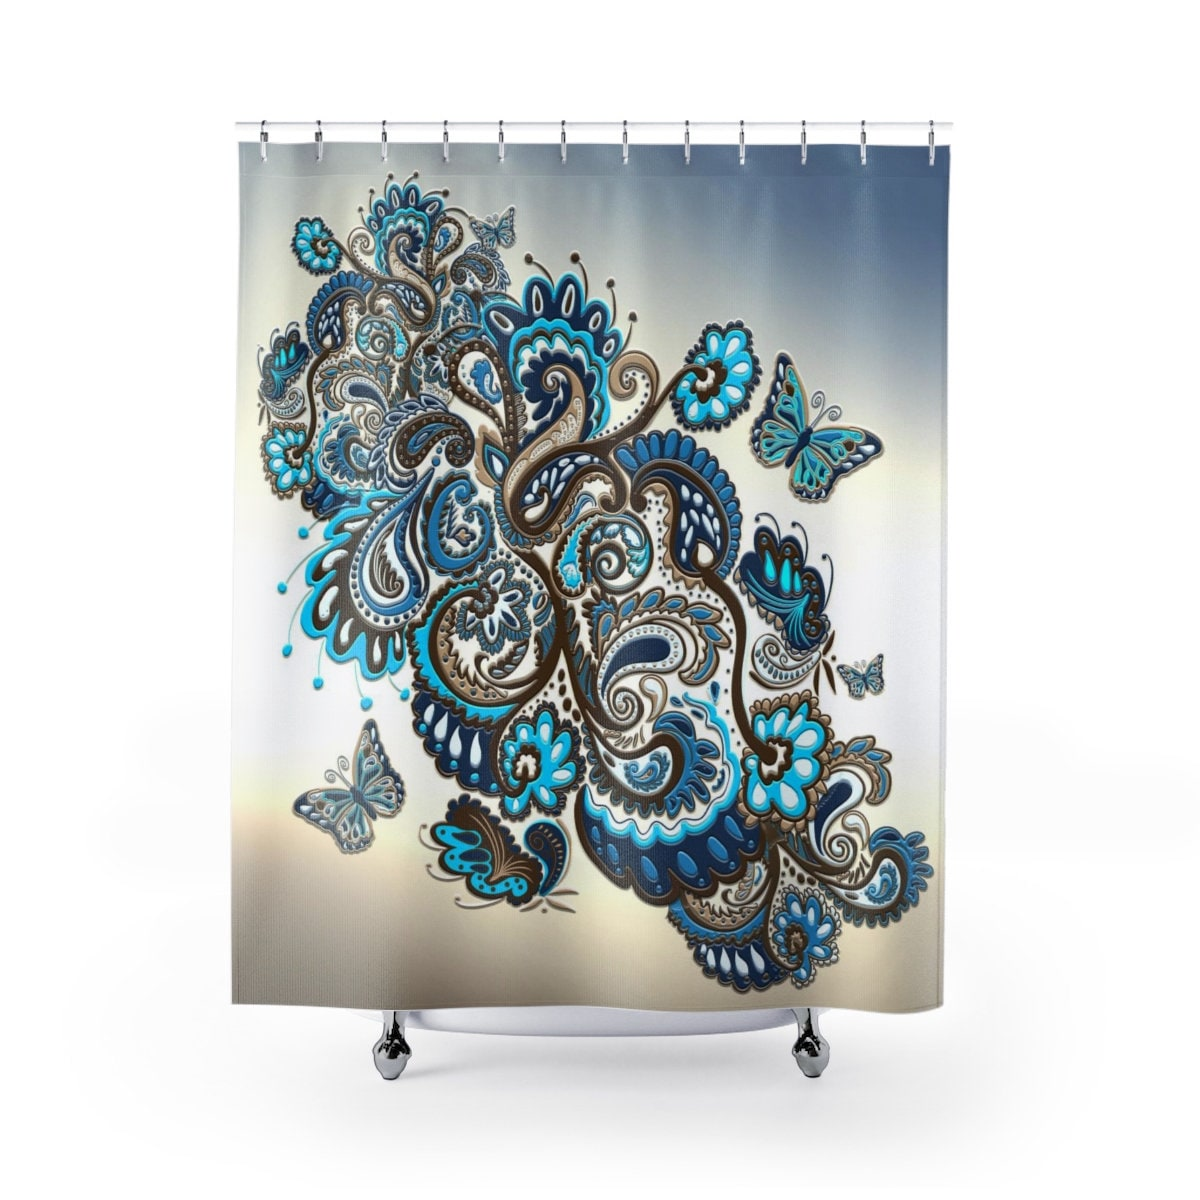 Brown Turquoise Shower Curtain Paisley Butterfly Fabric Shower Curtain Teal Brown Tan Cream Aqua Floral